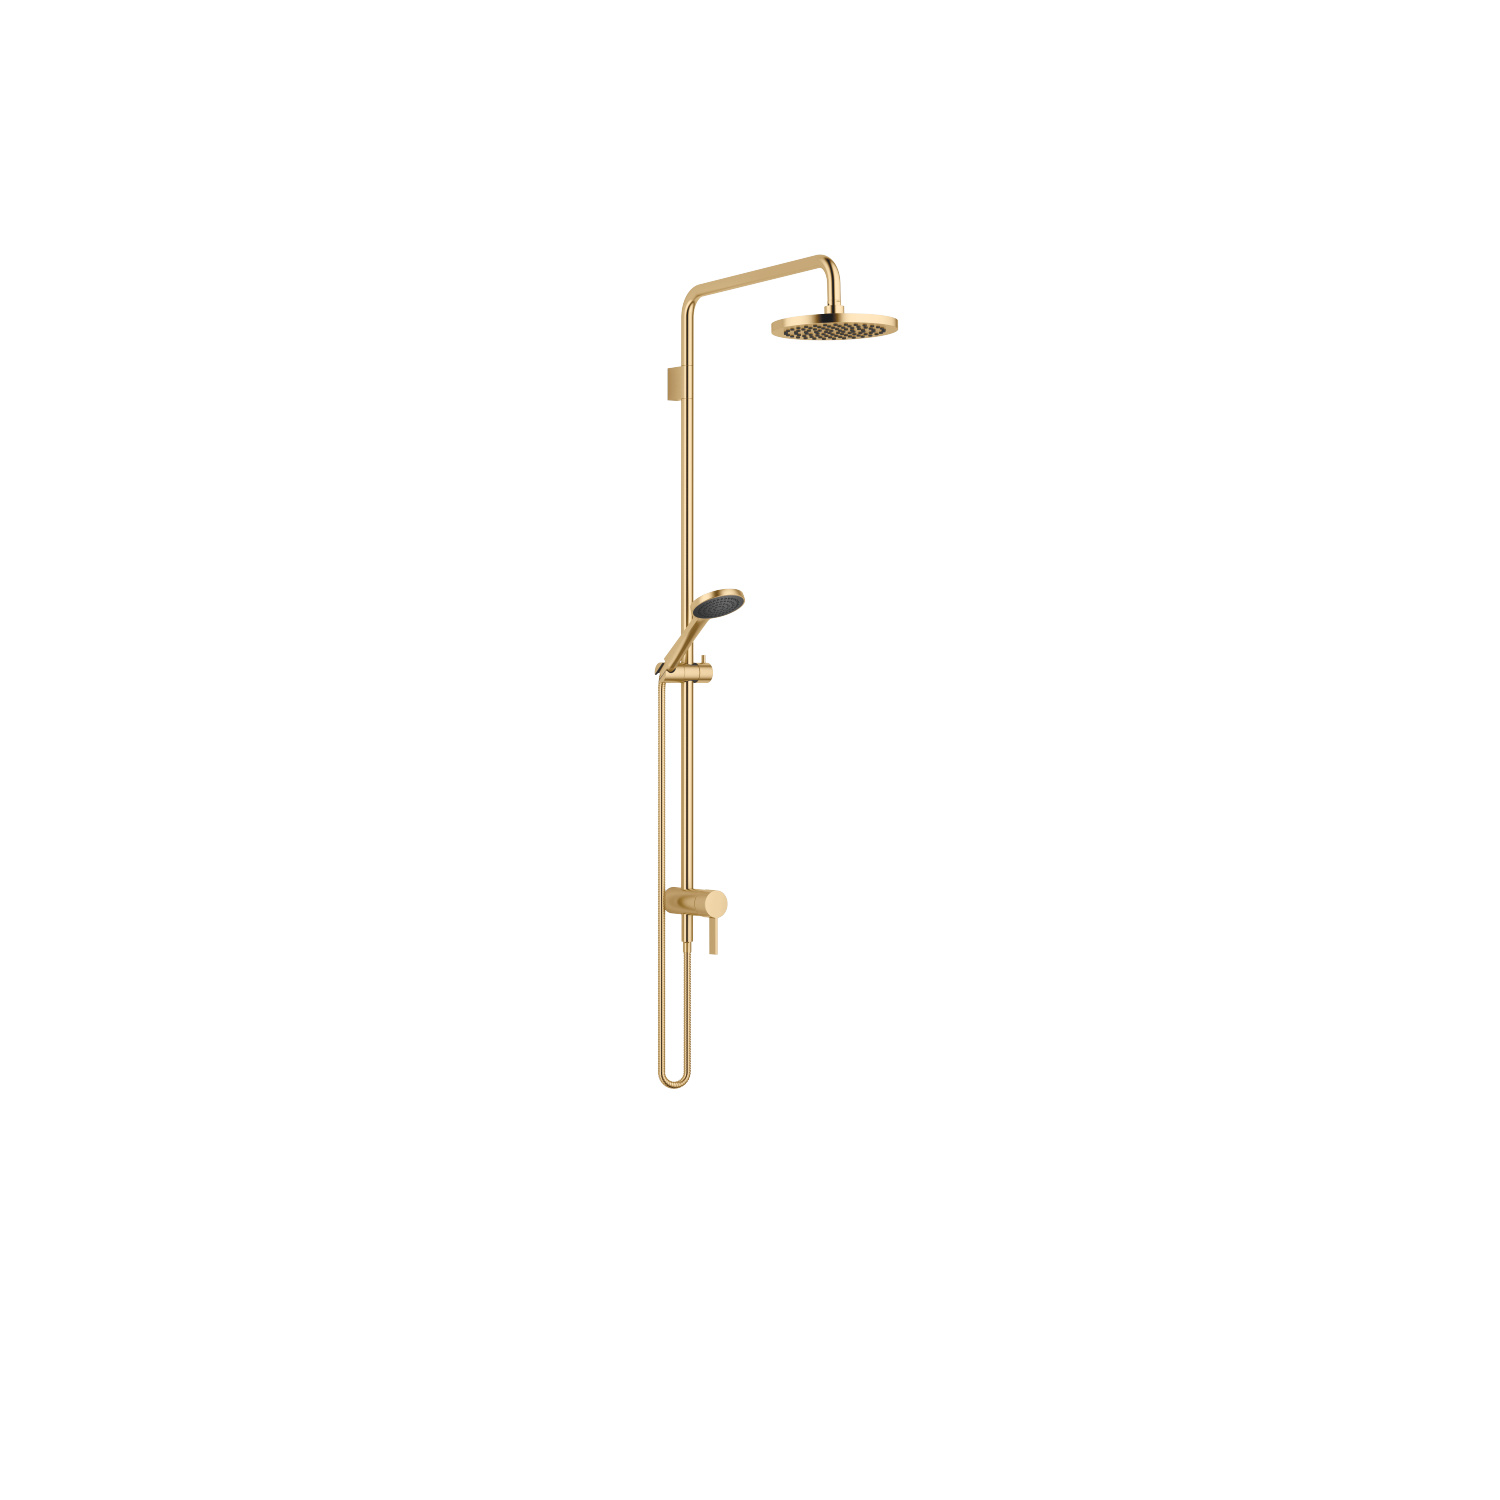 Showerpipe with single-lever shower mixer - brushed Durabrass